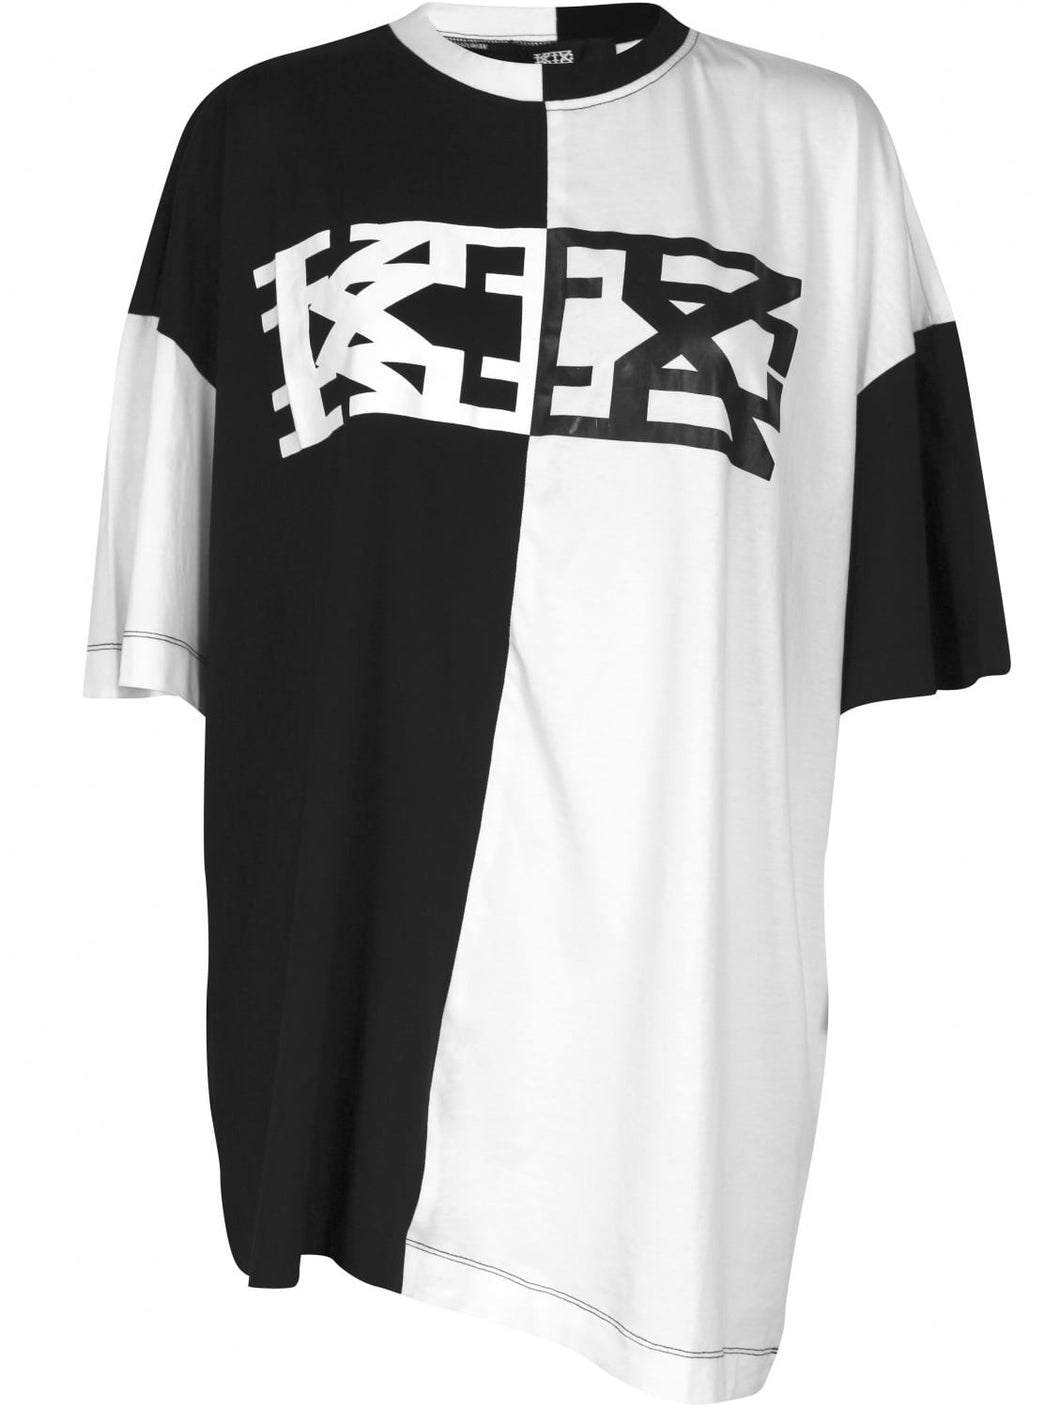 KTZ - Logo T-Shirt Black/White